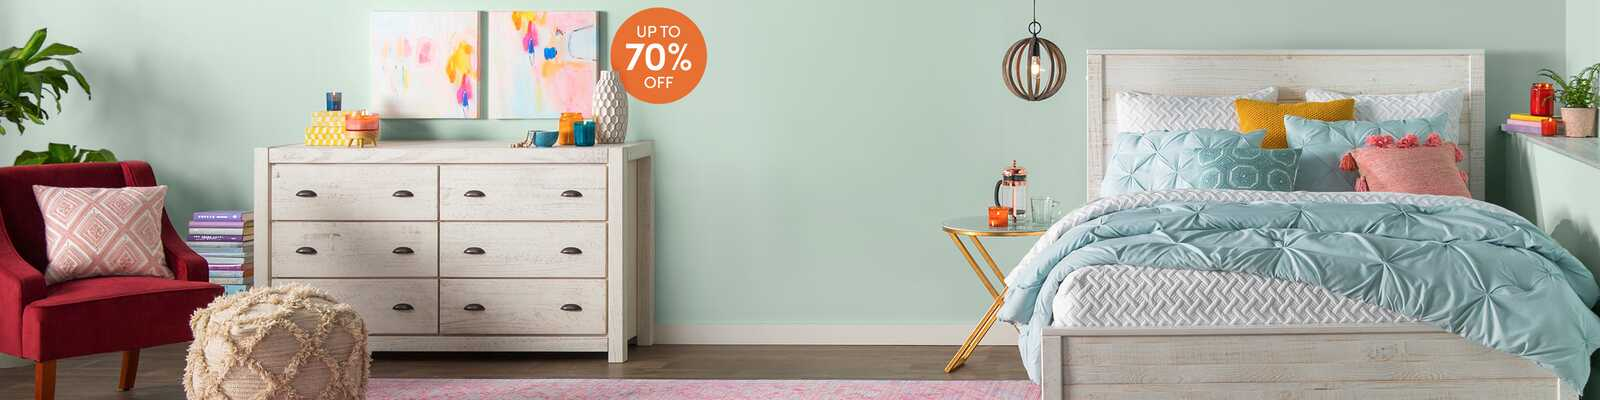 Wayfair ca - Online Home Store for Furniture, Decor